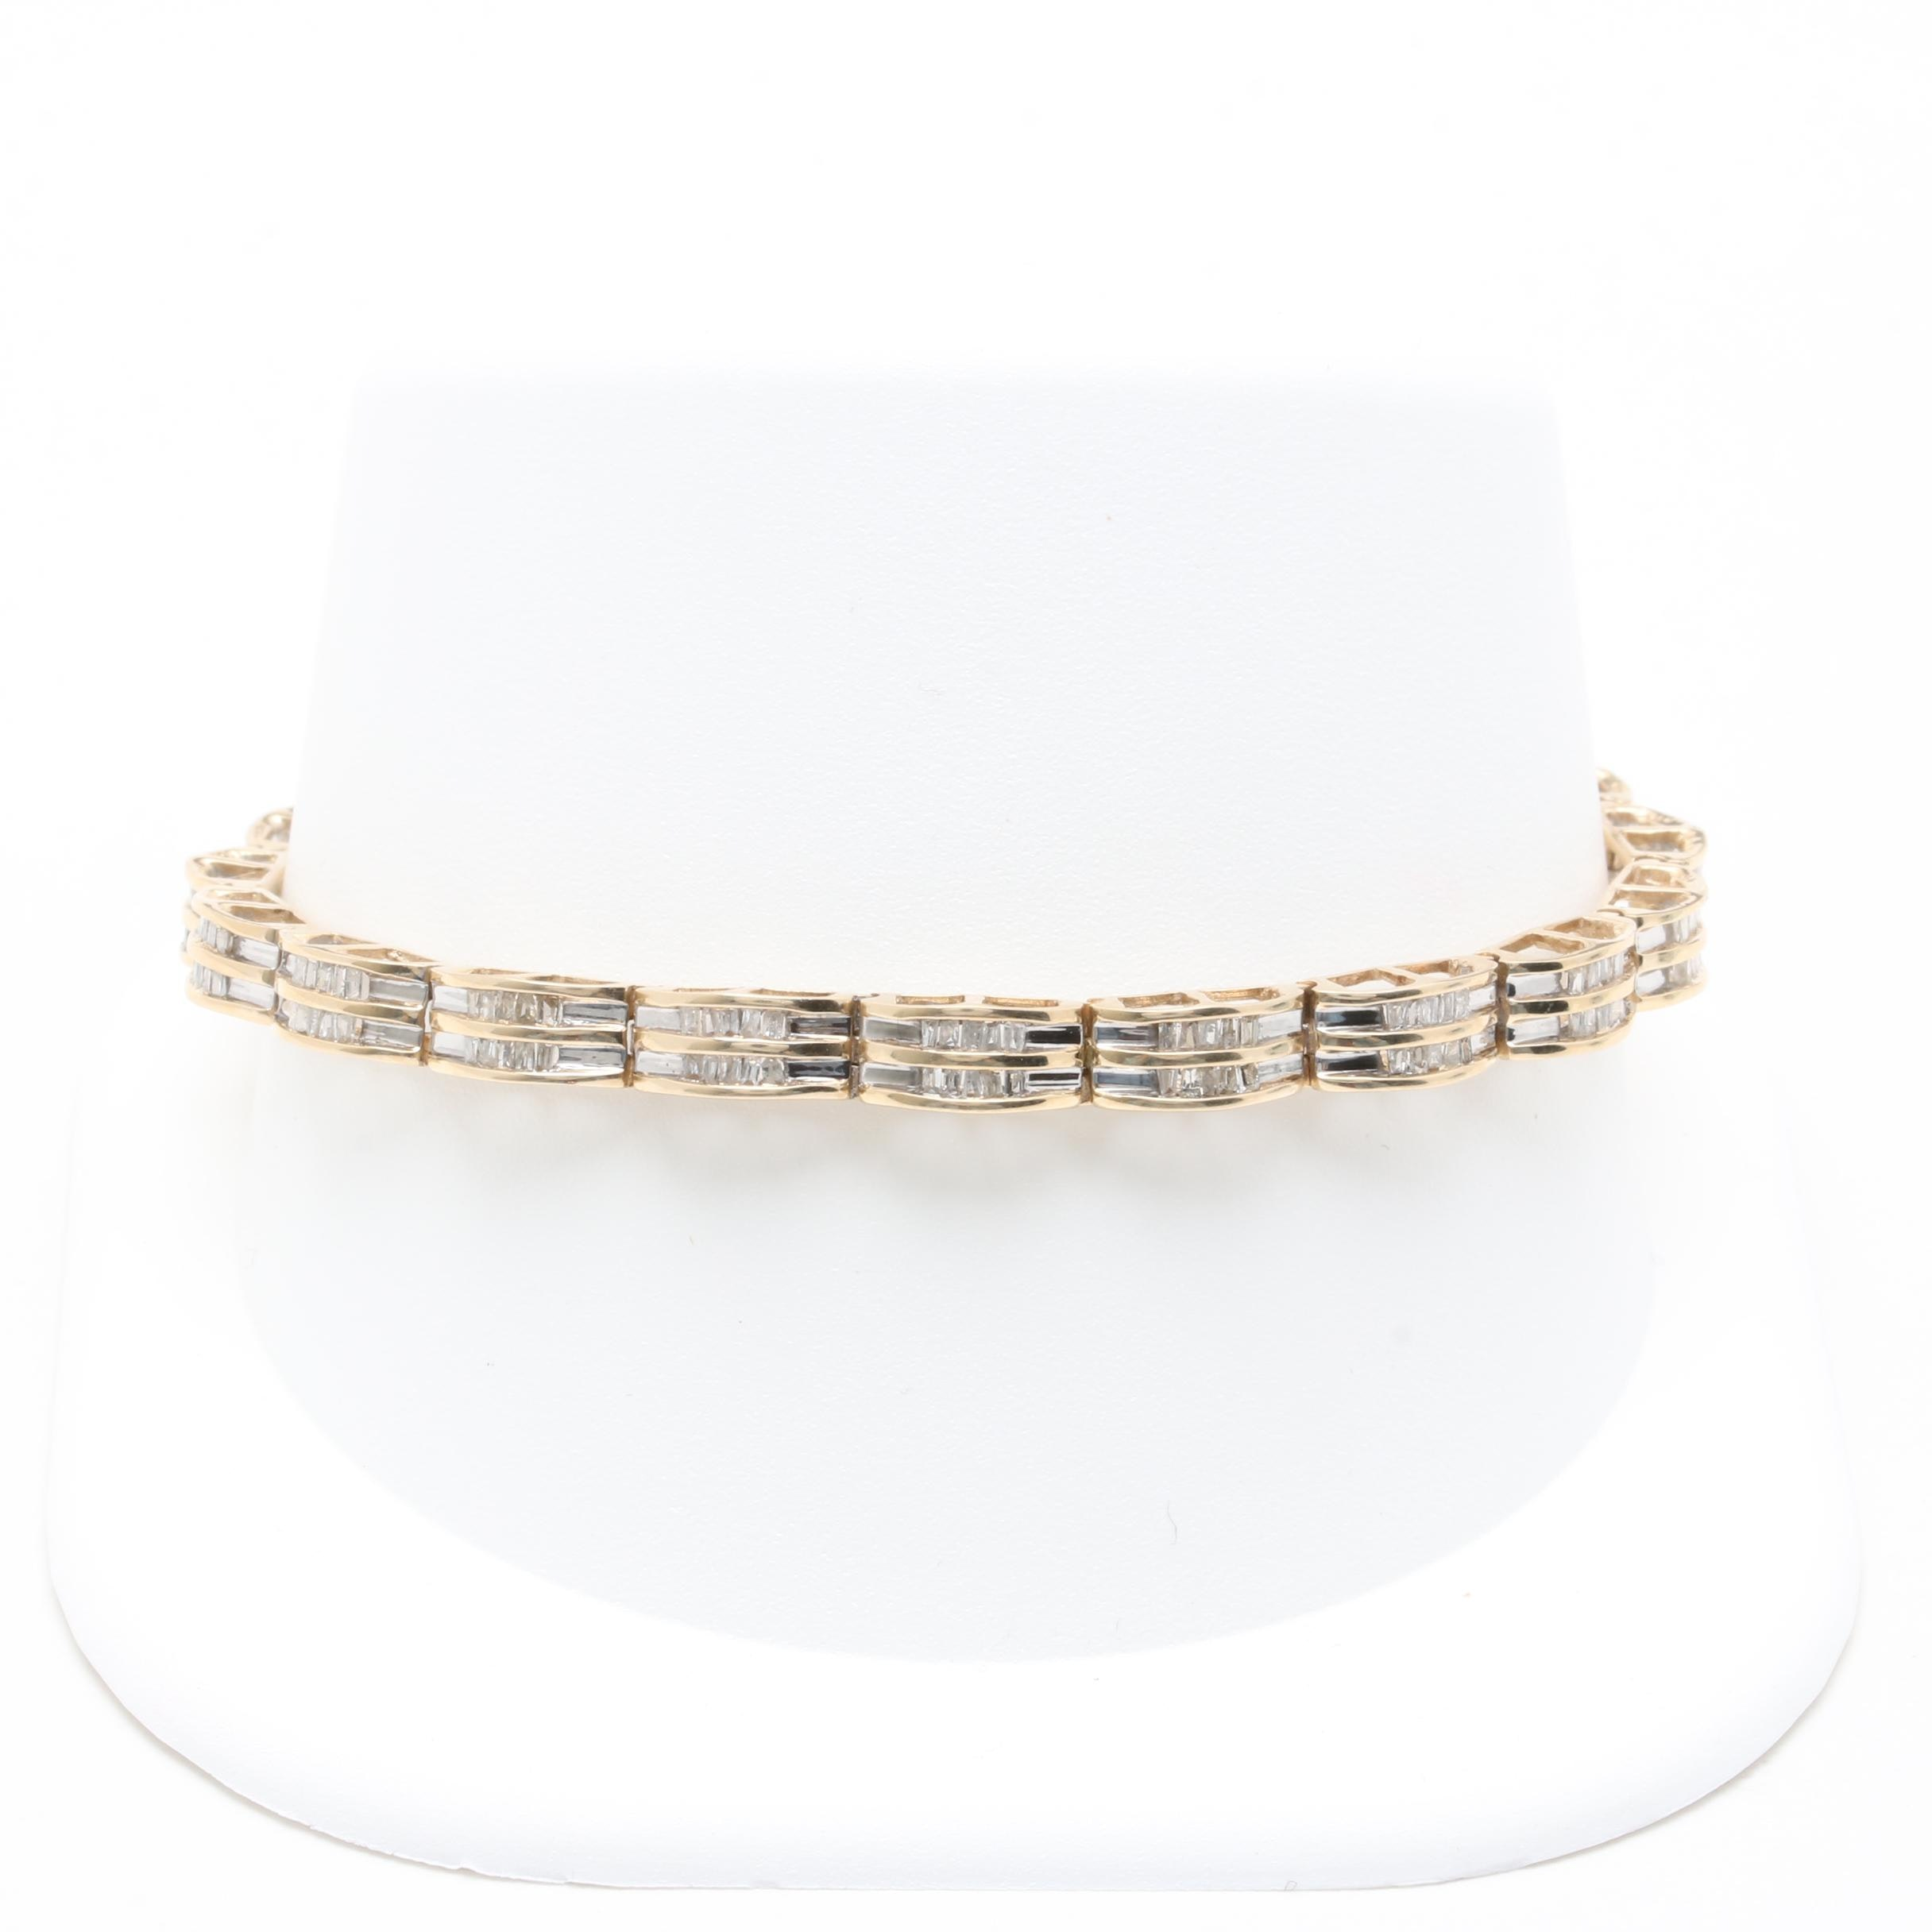 10K Yellow Gold 1.45 CTW Diamond Bracelet with White Gold Accents